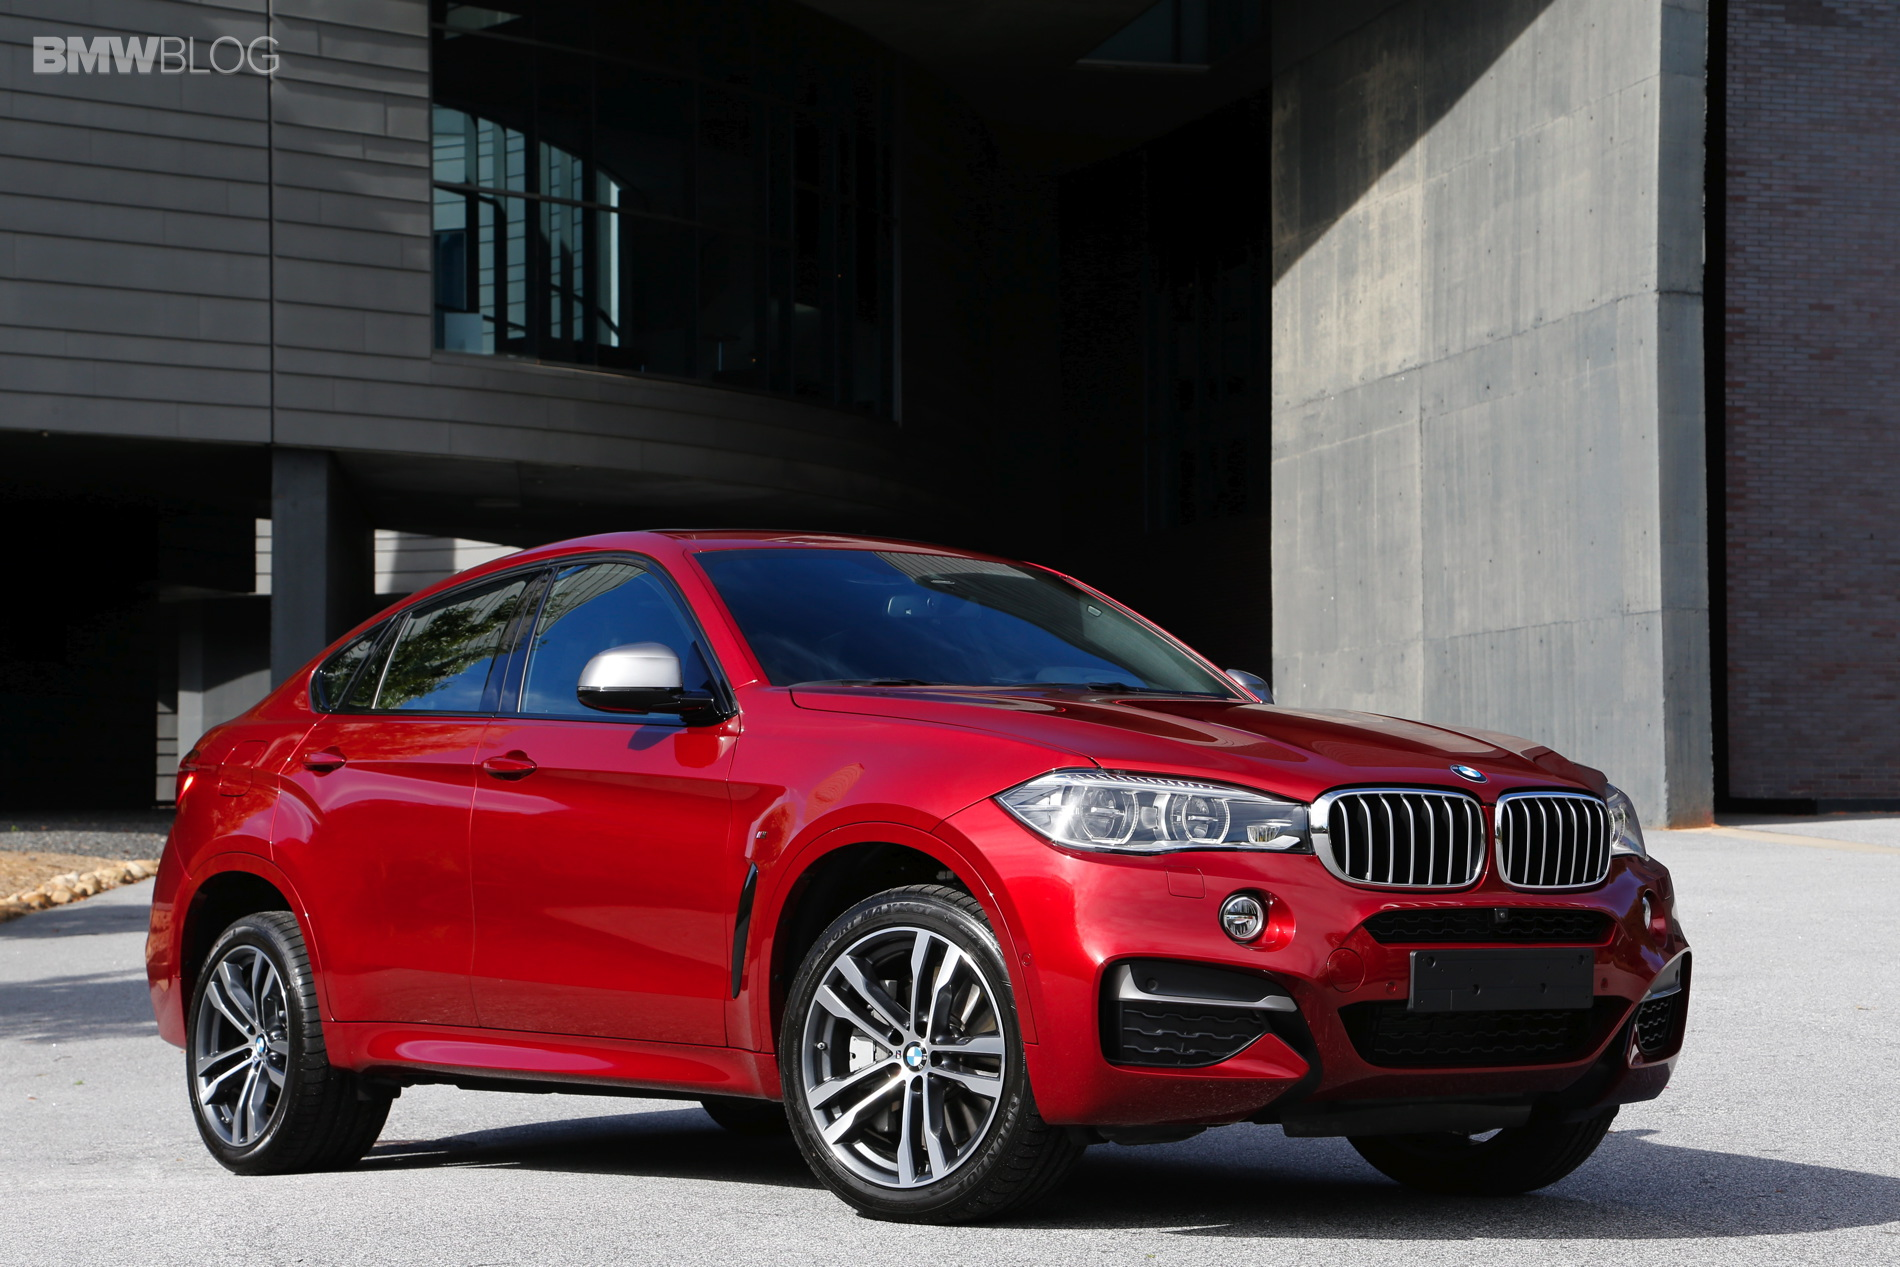 Ultimate Photo Gallery 2015 Bmw X6 Xdrive50i And 2015 Bmw X6 M50d